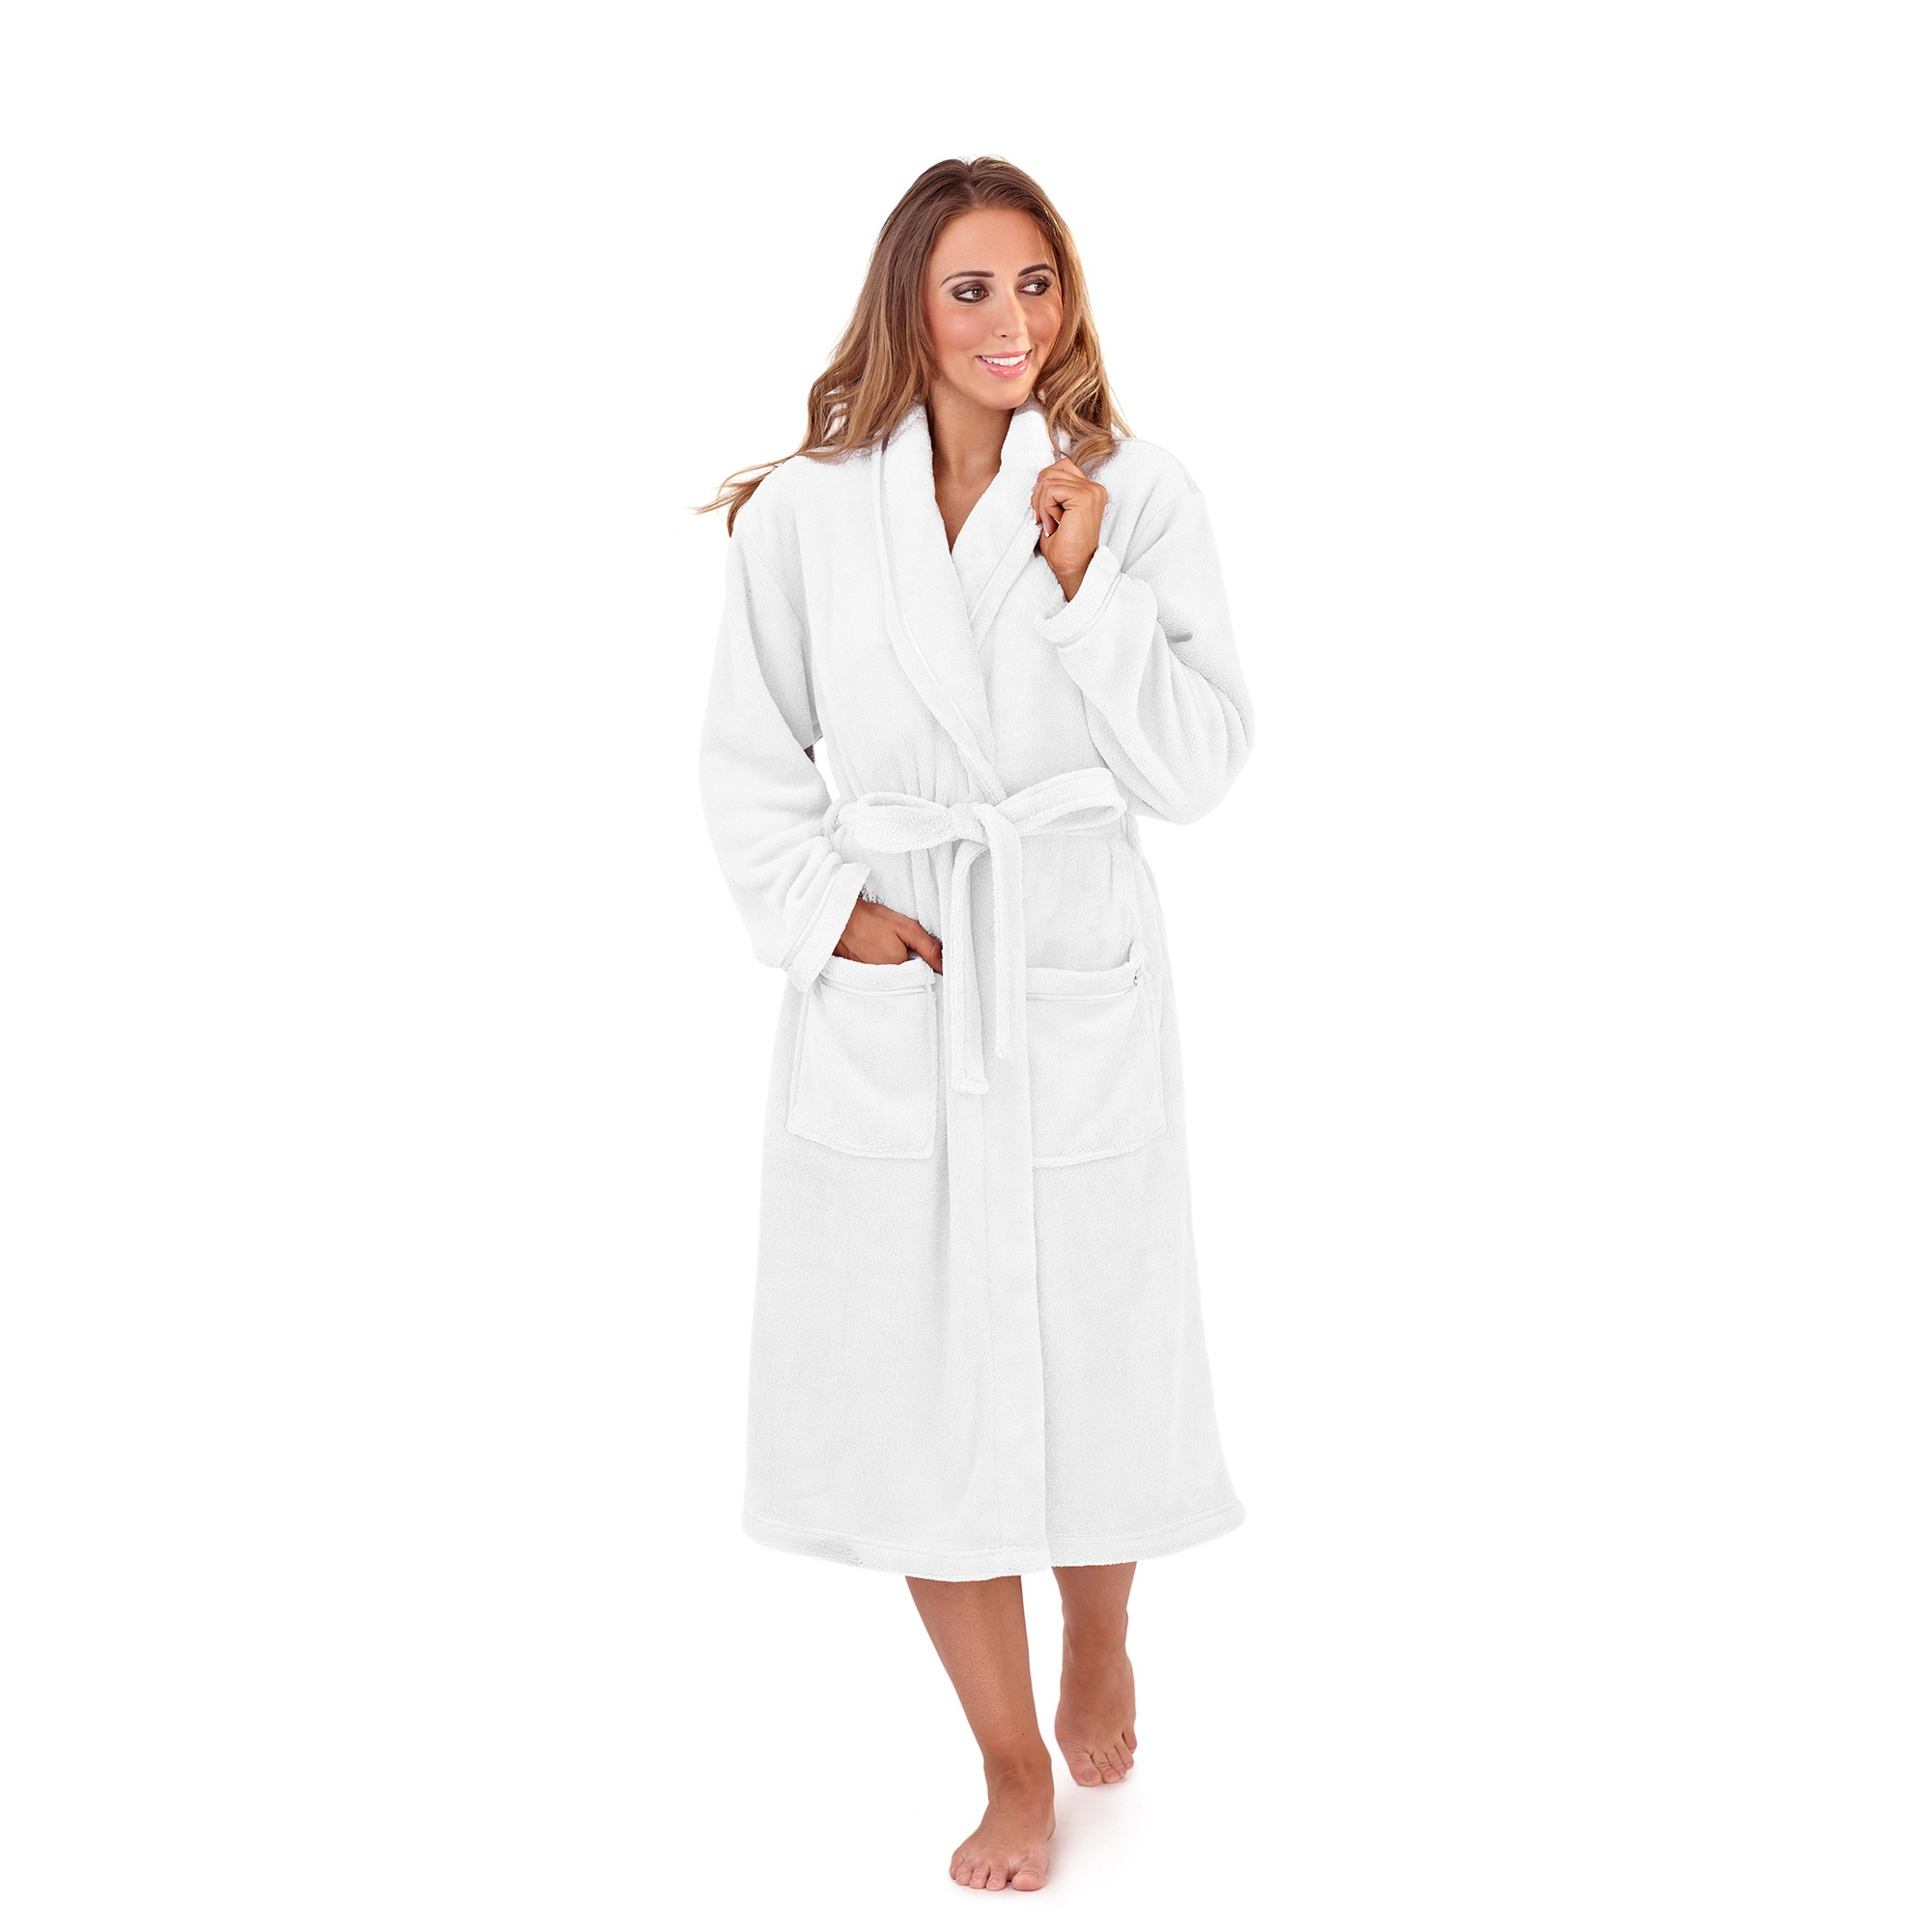 Ladies Super Soft Fleece Dressing Gown - White | Free UK Delivery ...